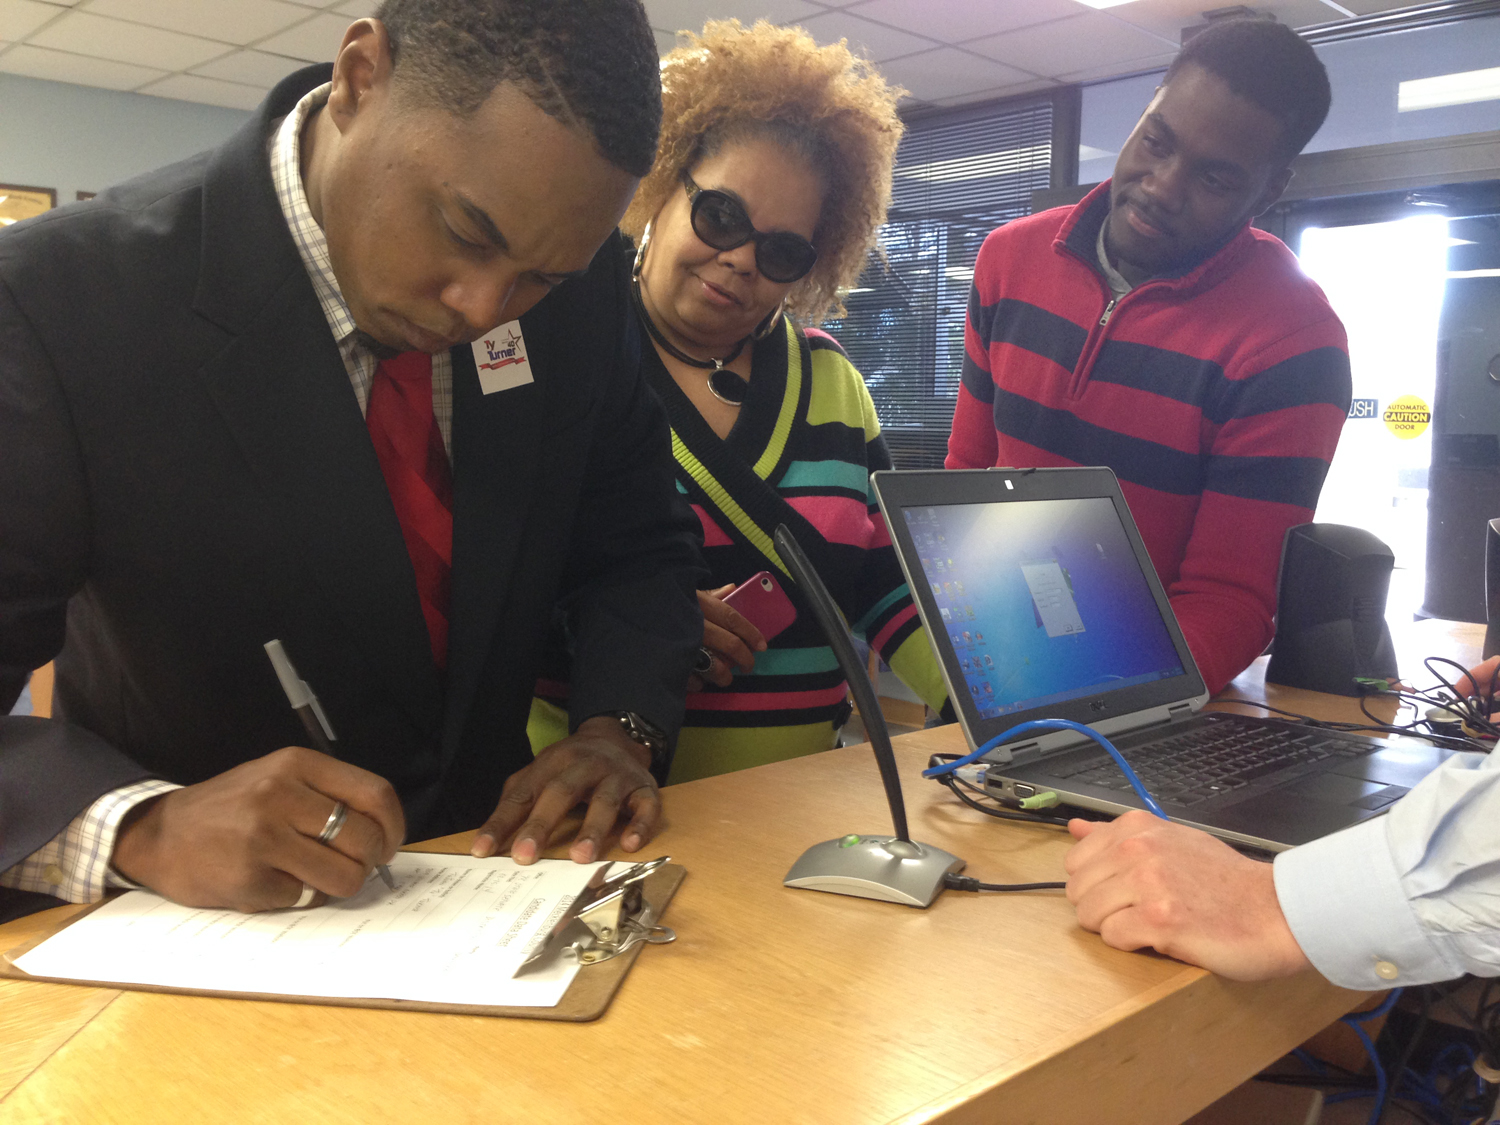 Ty Turner, left, files to run for office on Feb. 25 at the Mecklenburg County Board of Elections with his mother, Sonia Graddick, and brother, Stephen Graddick.